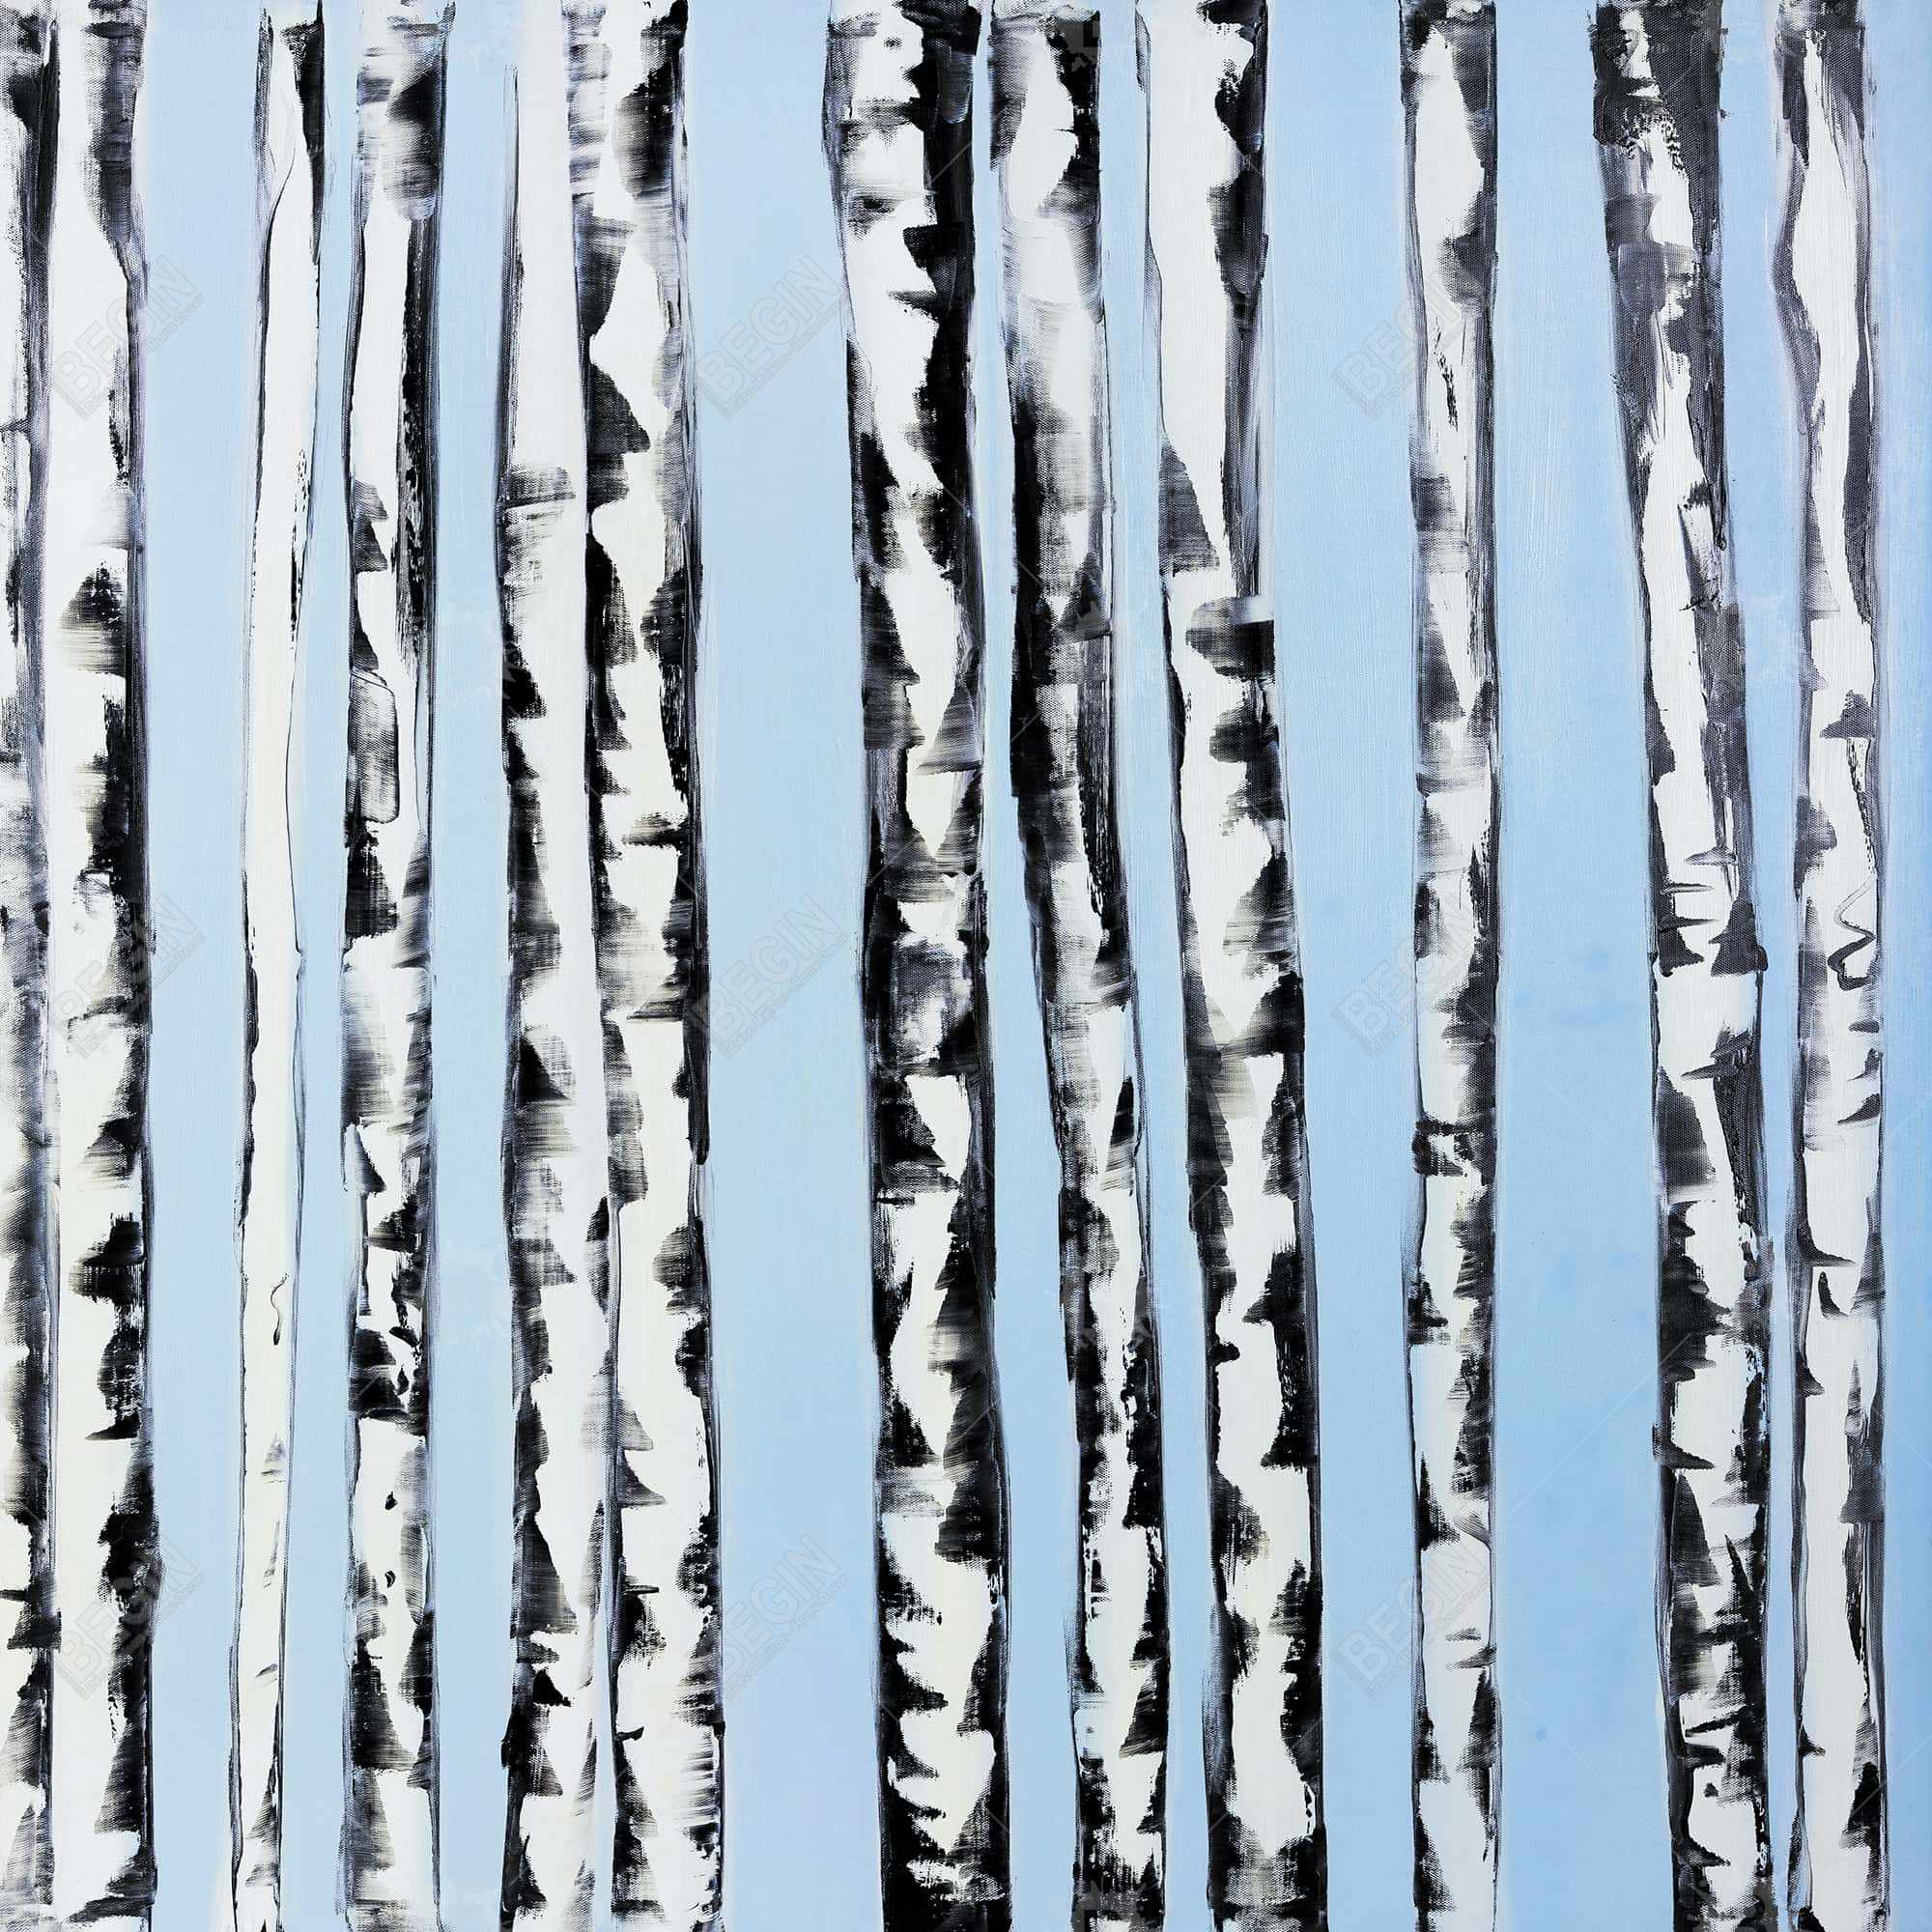 Birches on a blue background